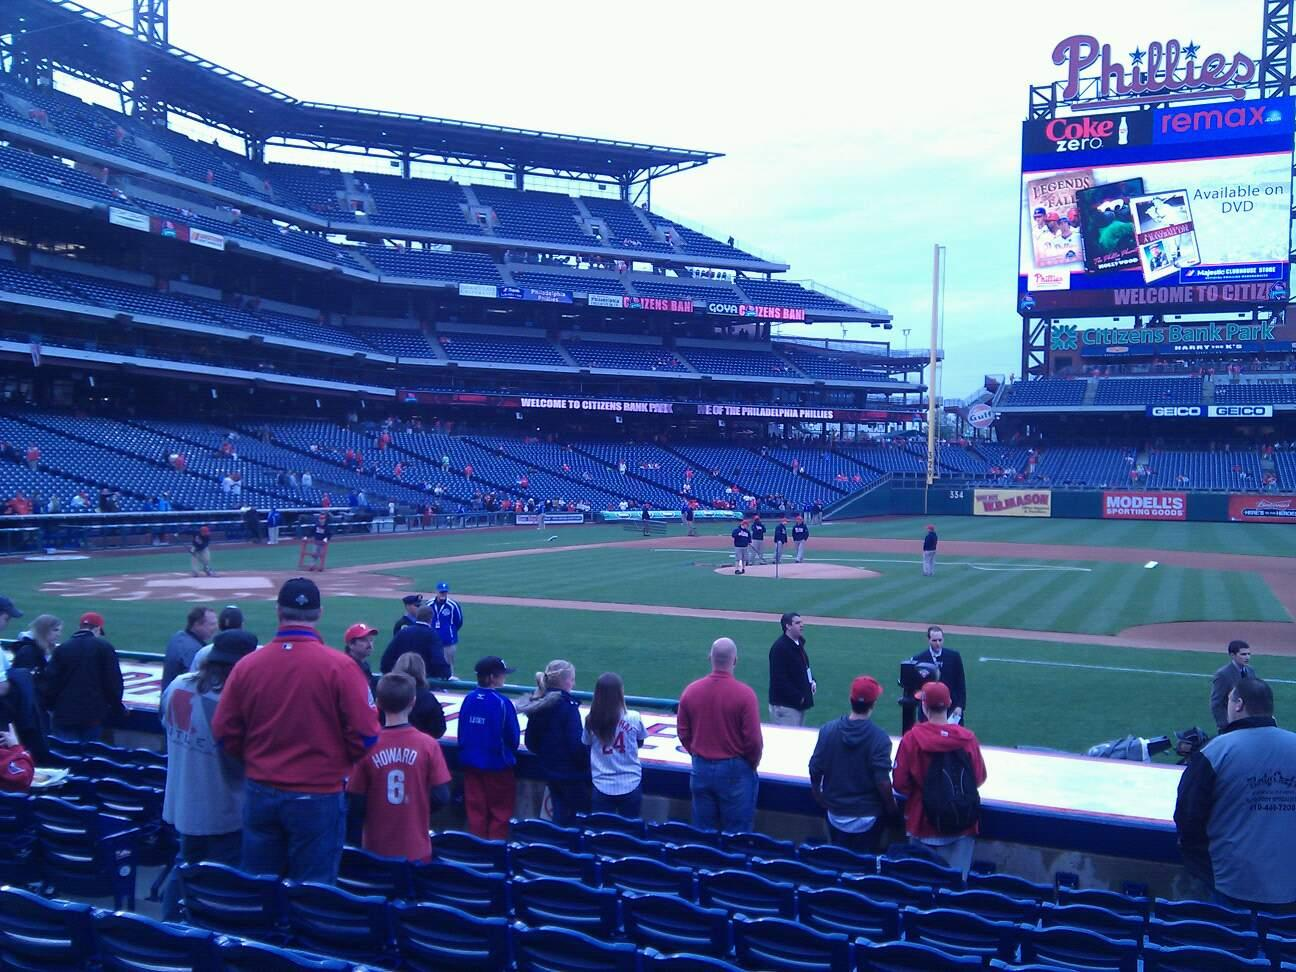 Citizens Bank Park Section 116 Row 13 Seat 11